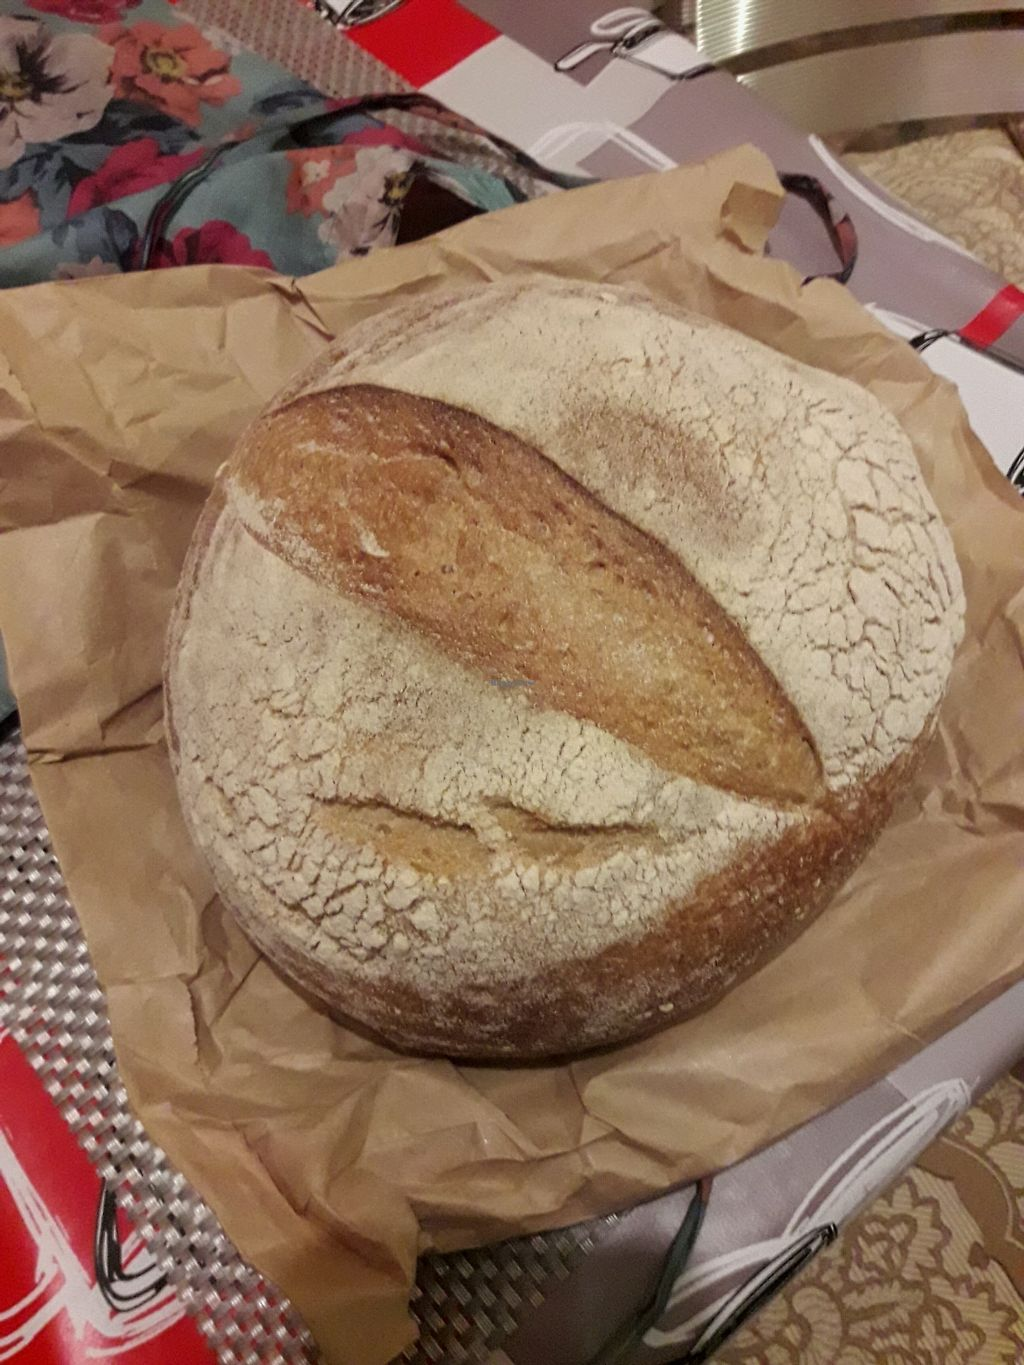 """Photo of The V & V Cafe  by <a href=""""/members/profile/Arta"""">Arta</a> <br/>sourdough from V&V <br/> February 26, 2018  - <a href='/contact/abuse/image/87908/364148'>Report</a>"""